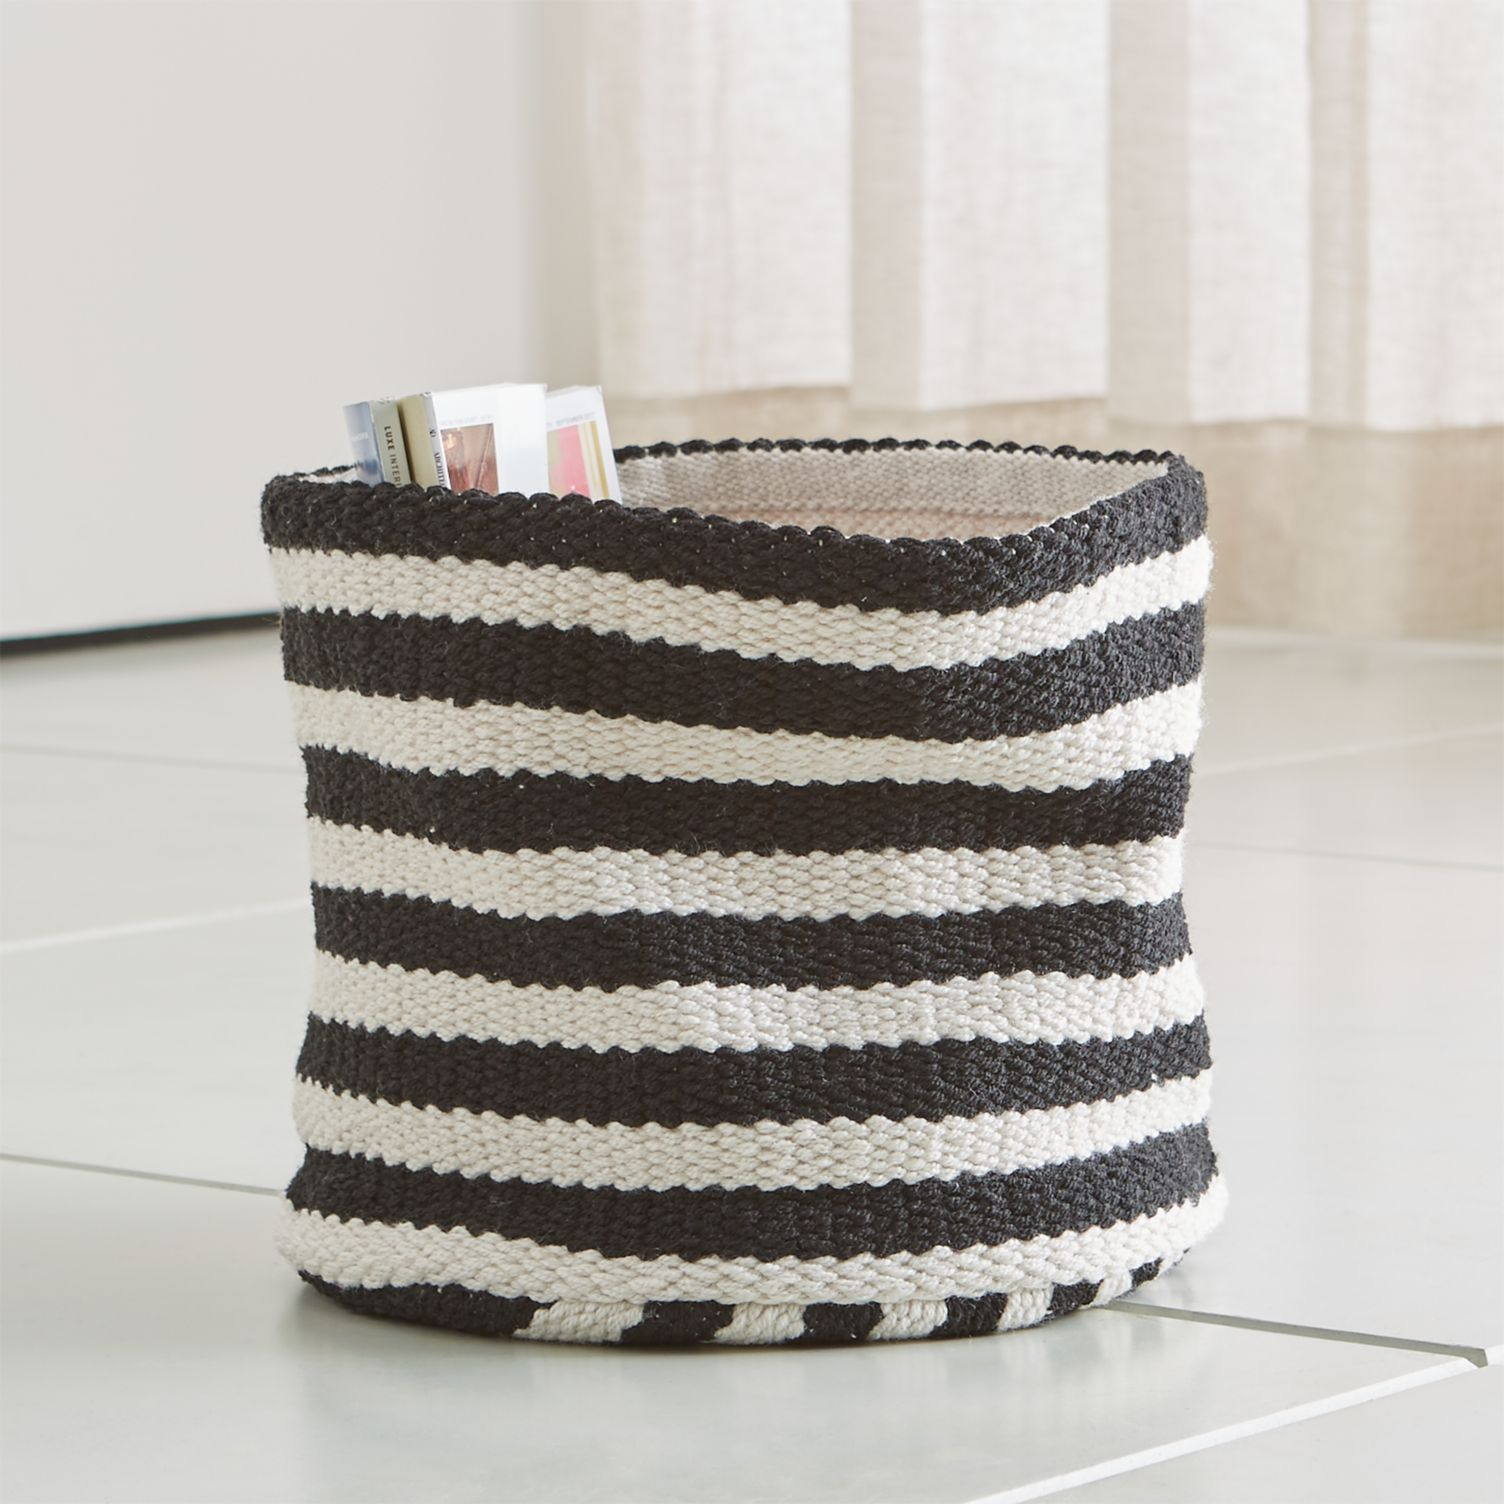 Black and white striped woven basket